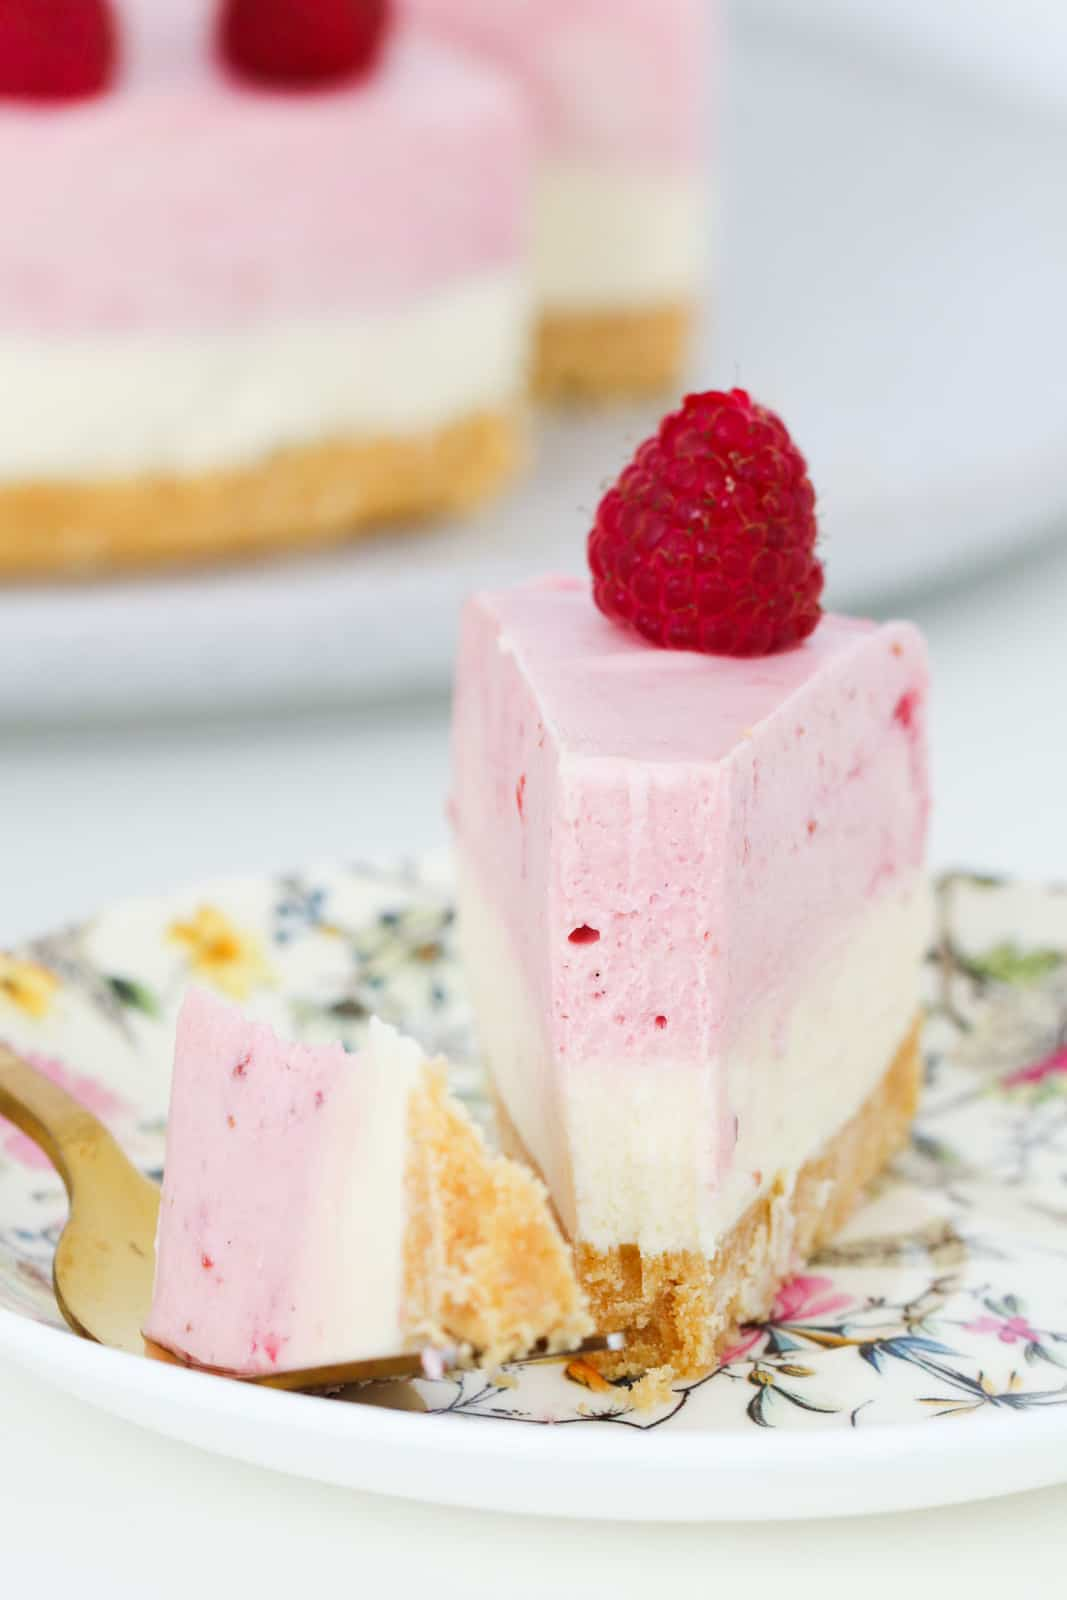 close up shot of cheesecake with white and pink layers garnished with fresh berries